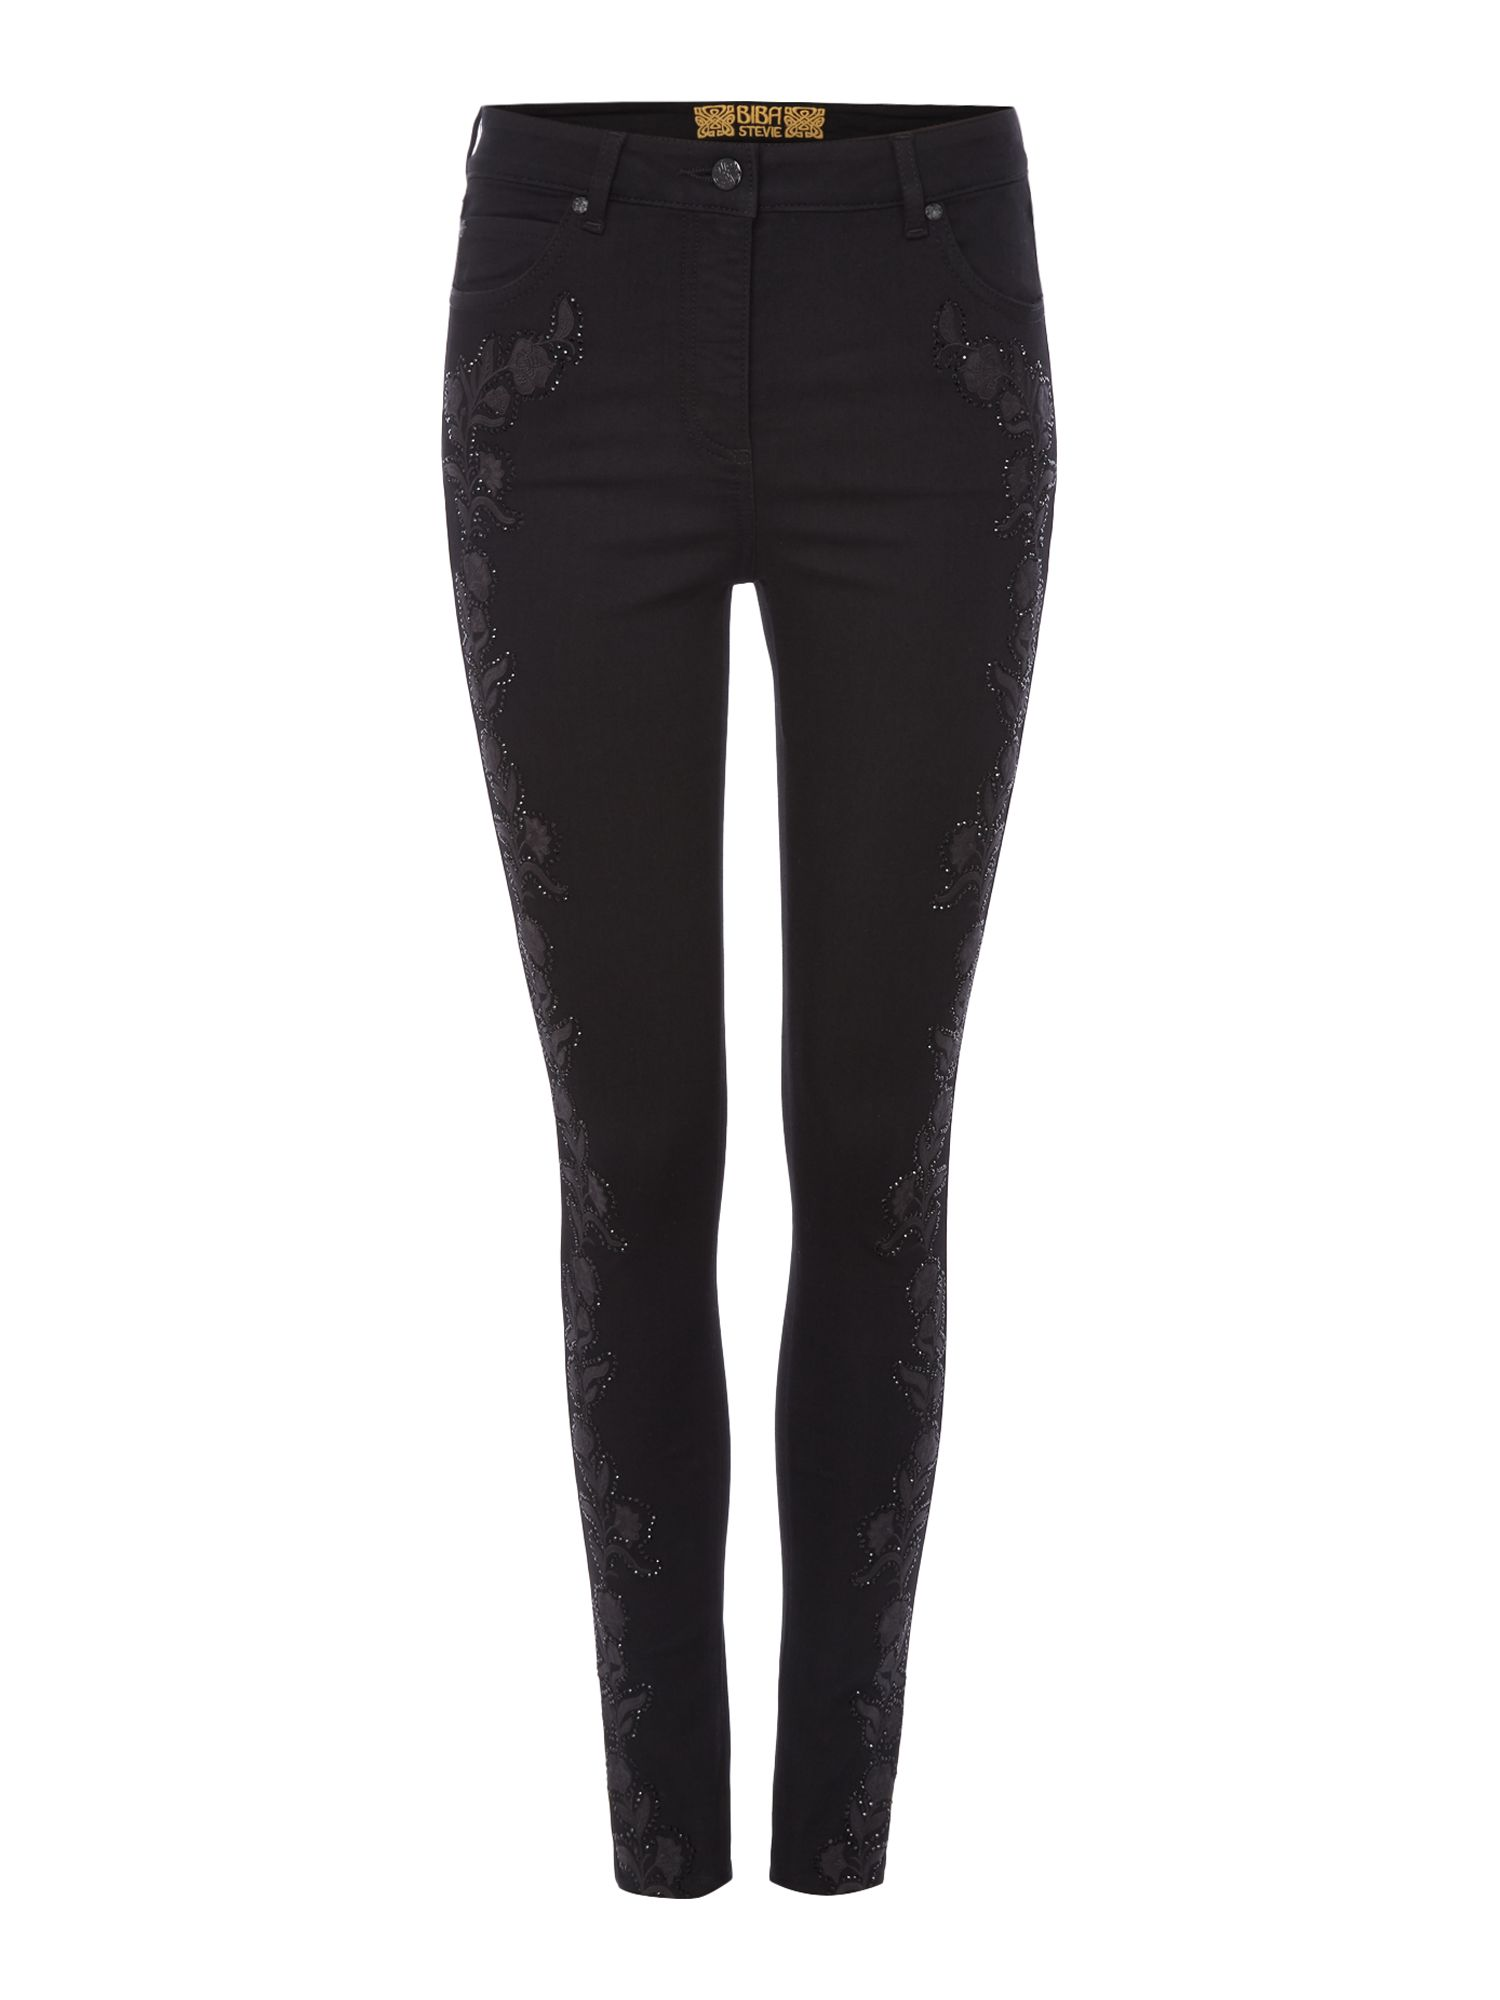 Biba Embroidered and embellished jeans, Black